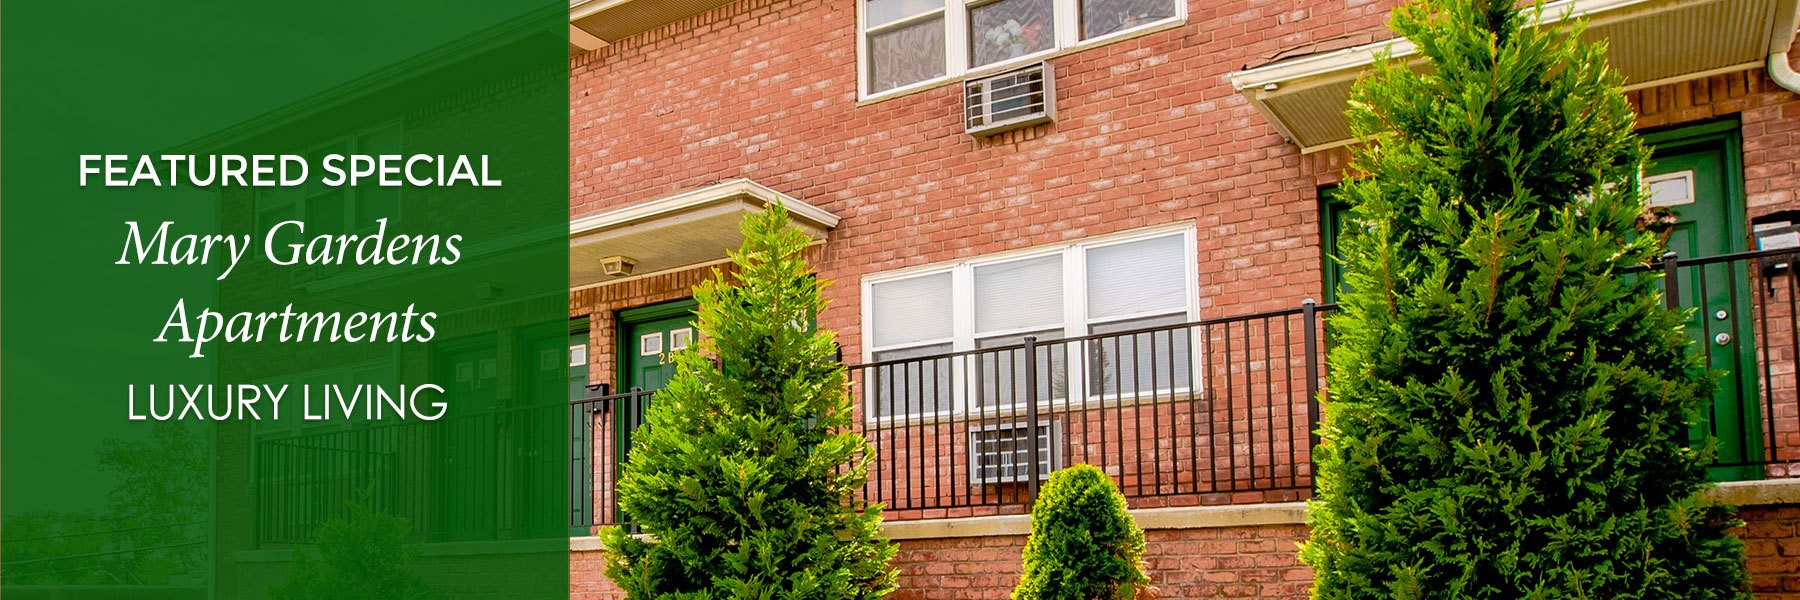 Mary Gardens Apartments For Rent in Hackensack, NJ Specials